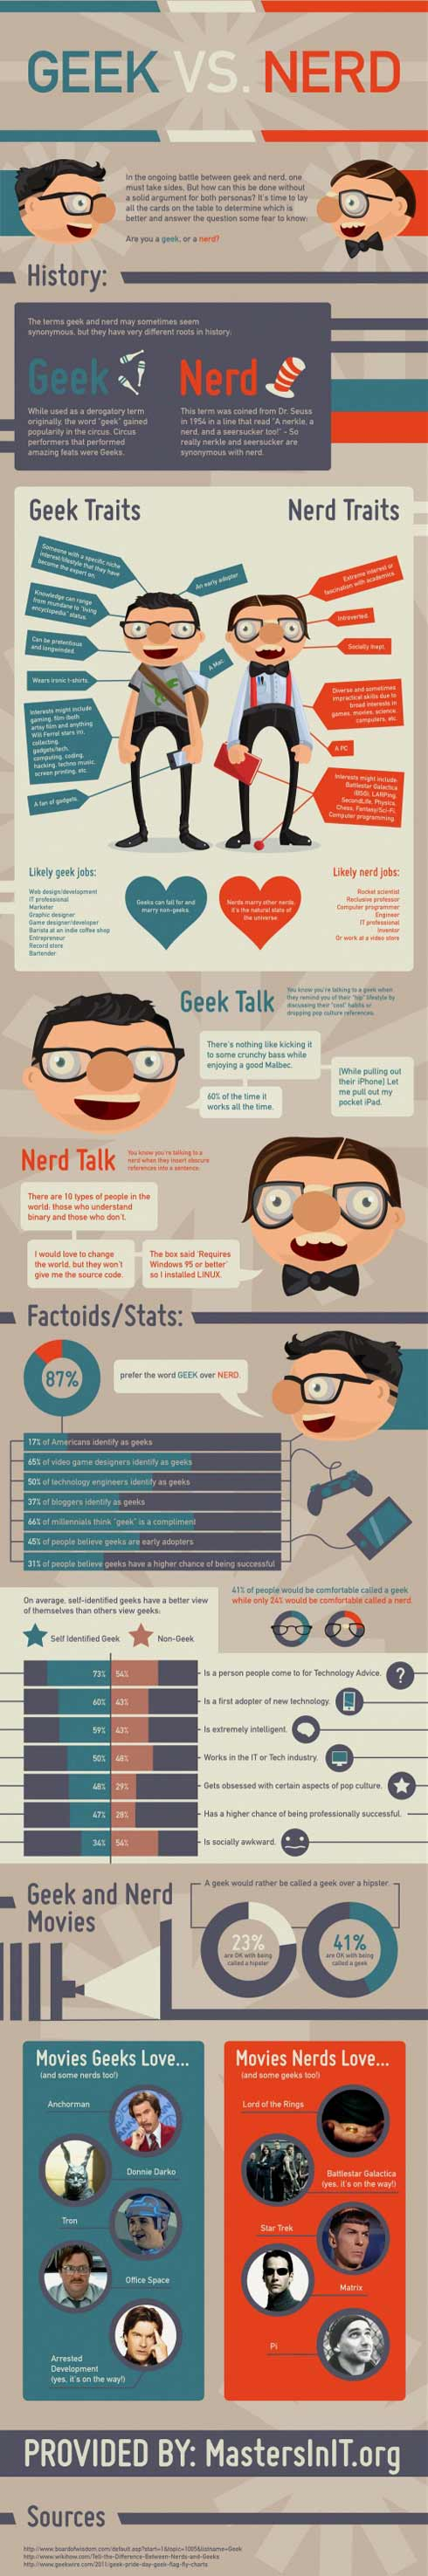 Geeks vs. Nerds